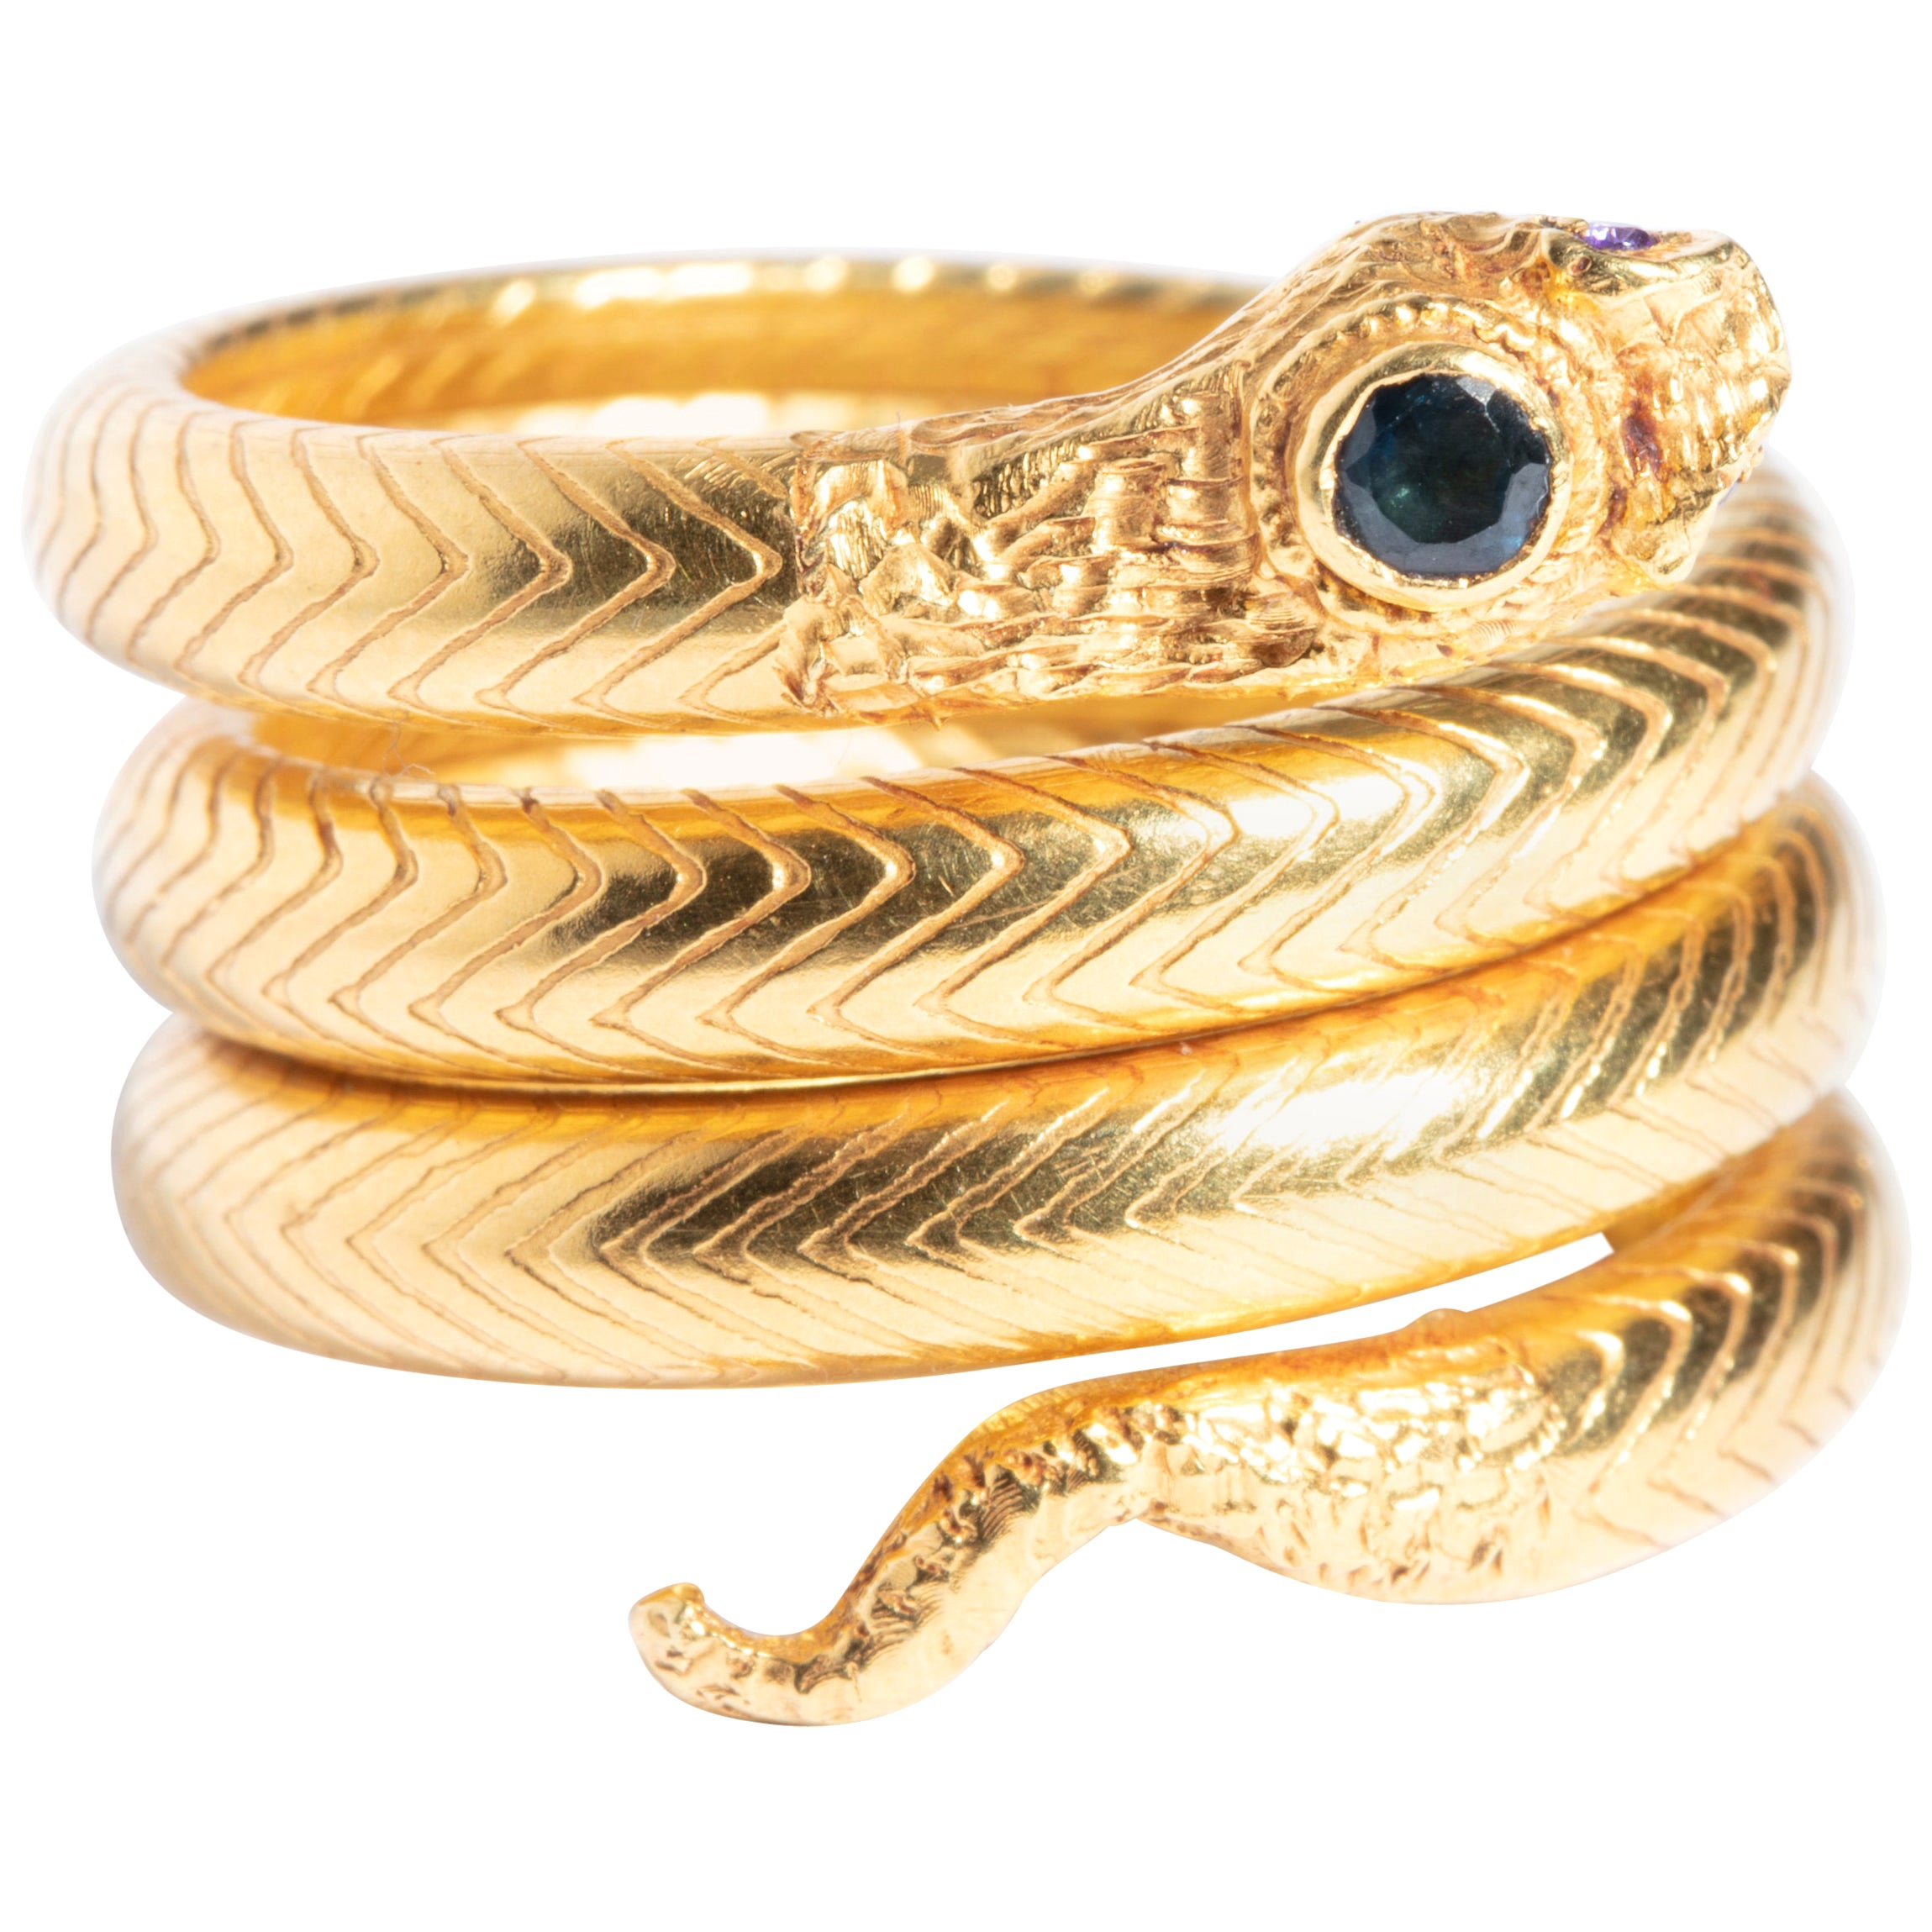 22 Karat Gold Snake Cocktail Ring with Sapphires and Diamonds